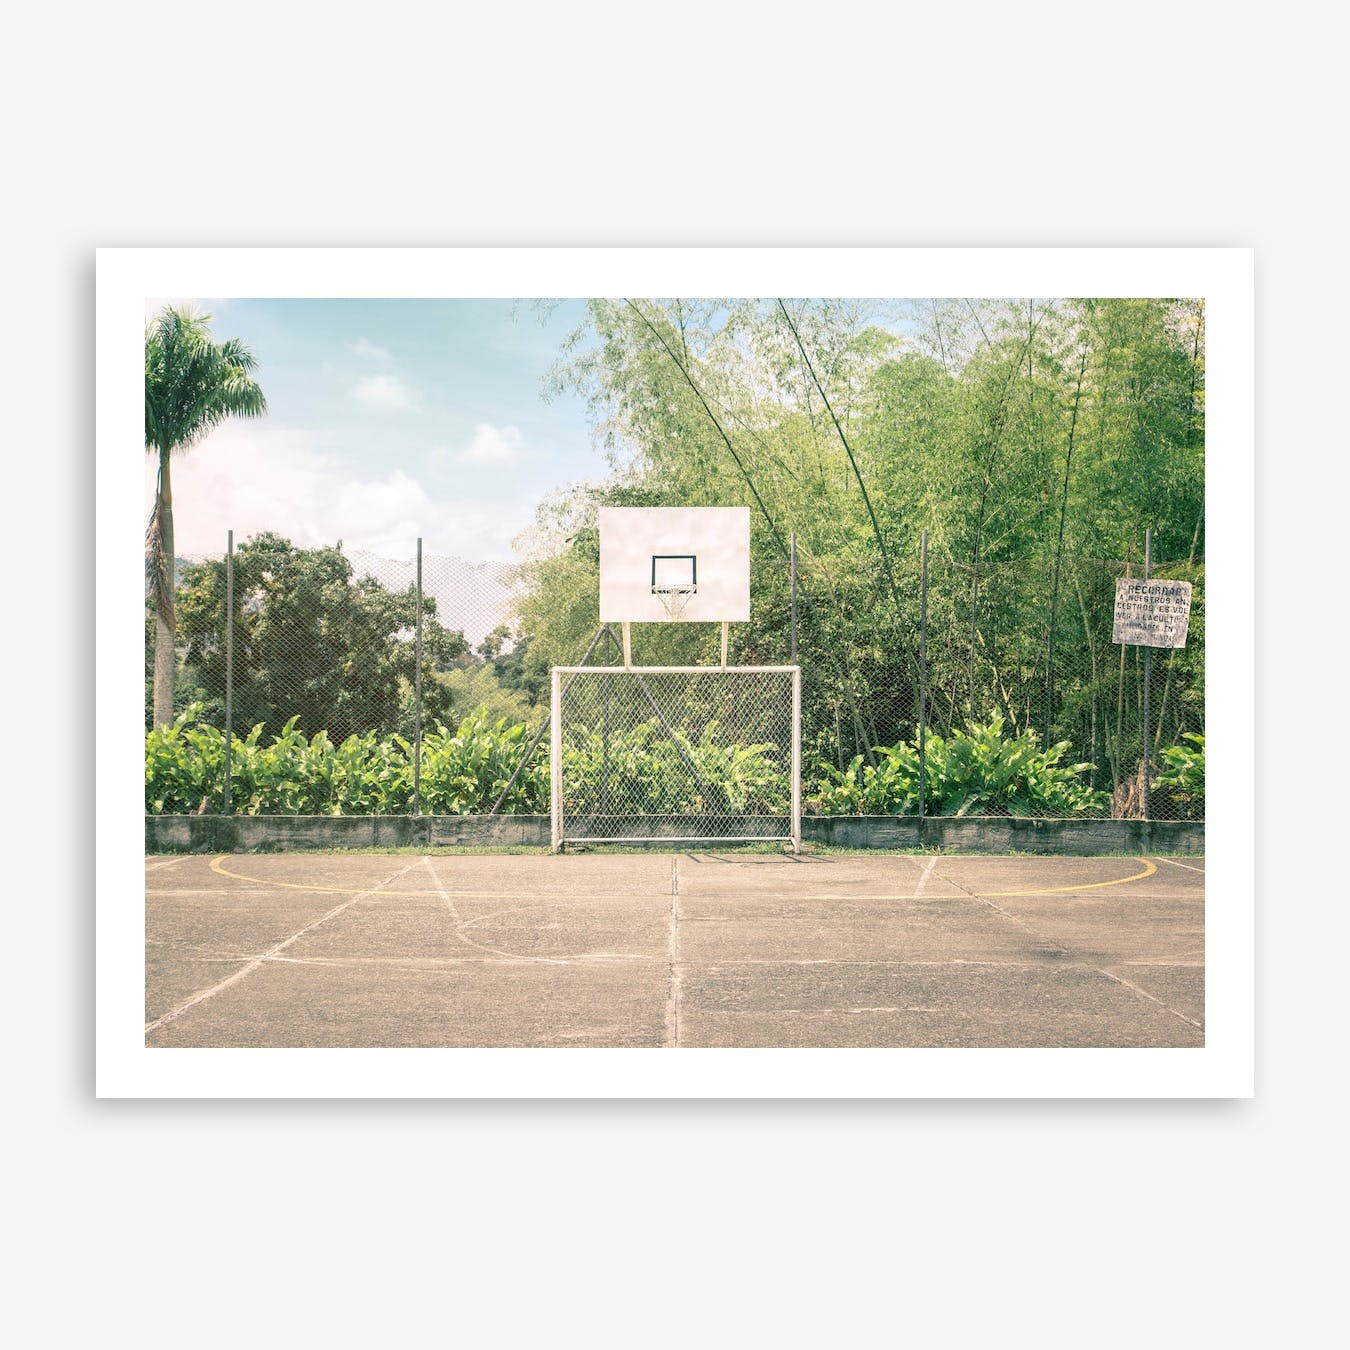 Streetball Courts 2 Manizales